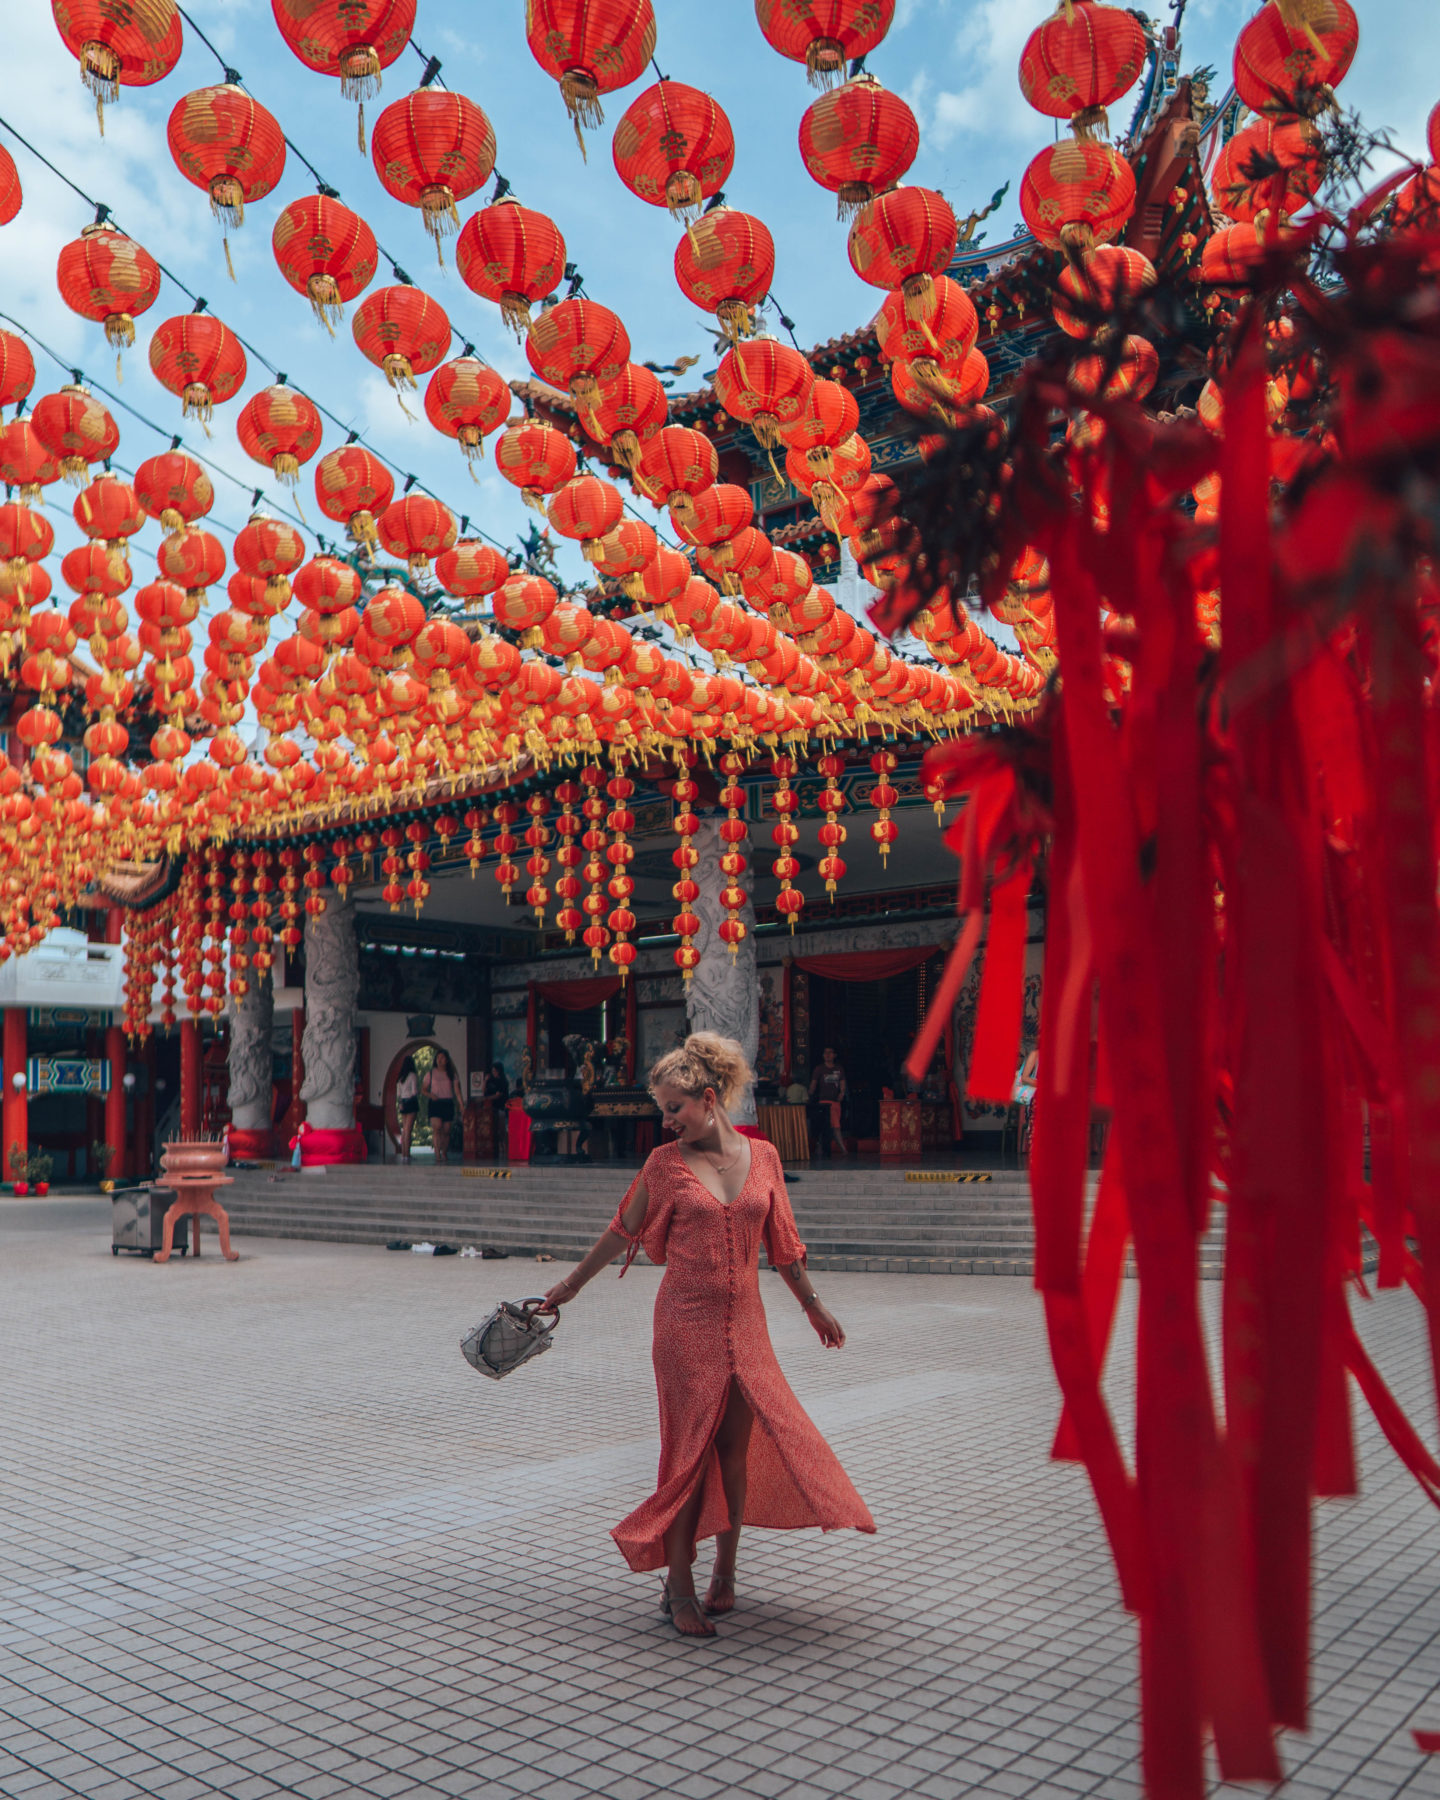 Red lanterns of Thean Hou Temple